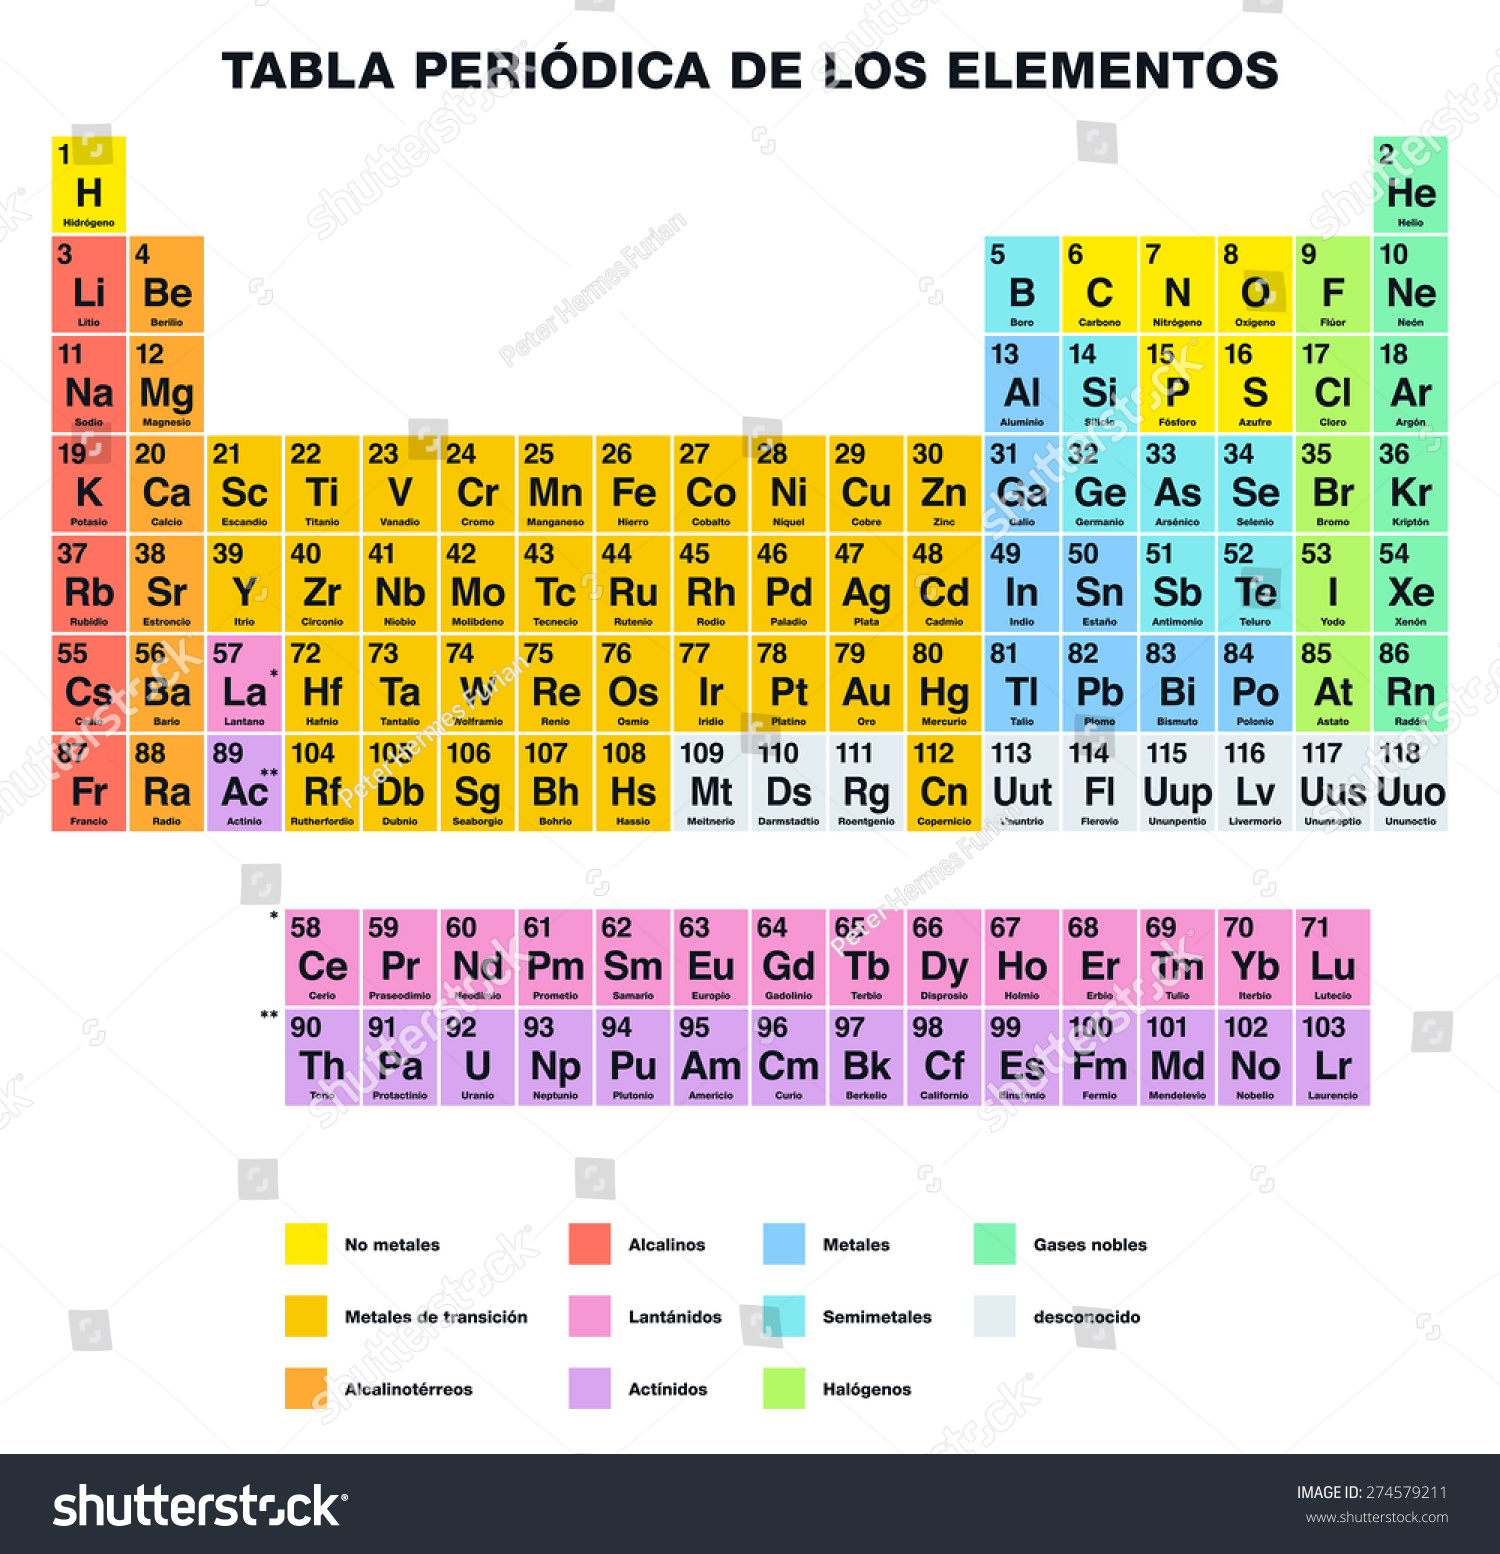 Royalty free periodic table of the elements spanish 274579211 periodic table of the elements spanish labeling tabular arrangement of chemical elements with their gamestrikefo Images